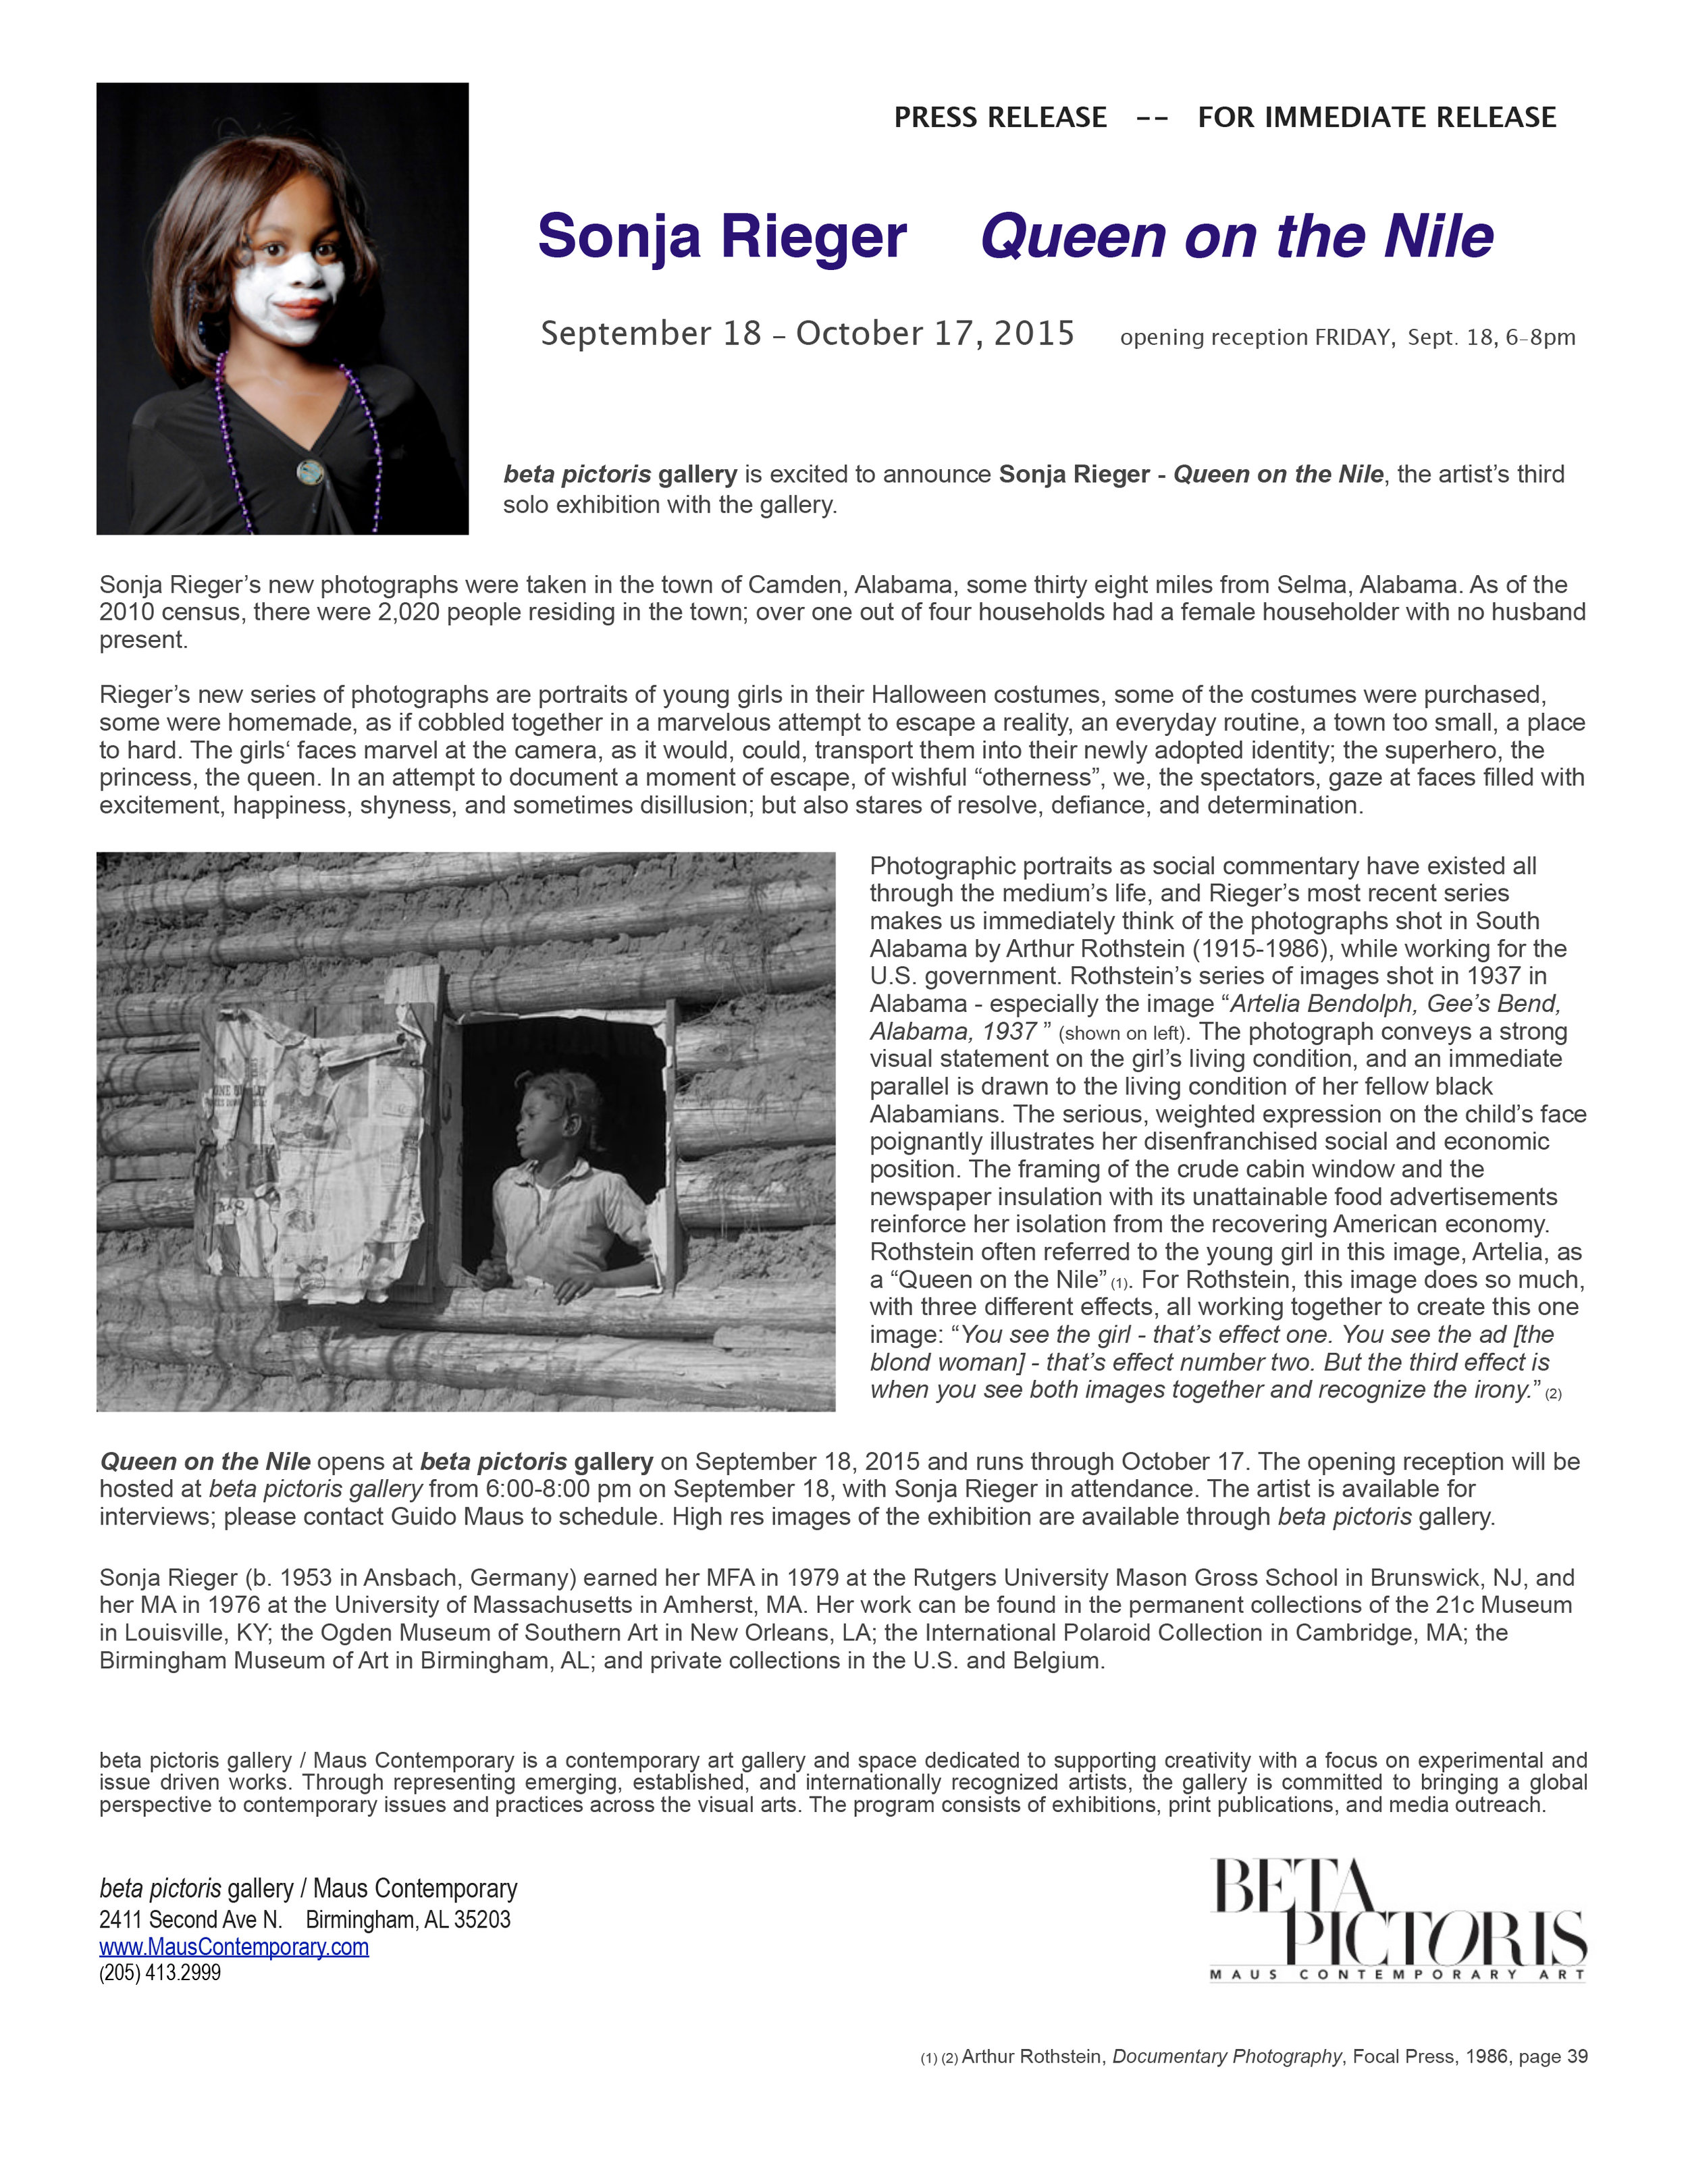 PRESS RELEASE Sonja Rieger - Queen on the Nile[8] copy.jpg